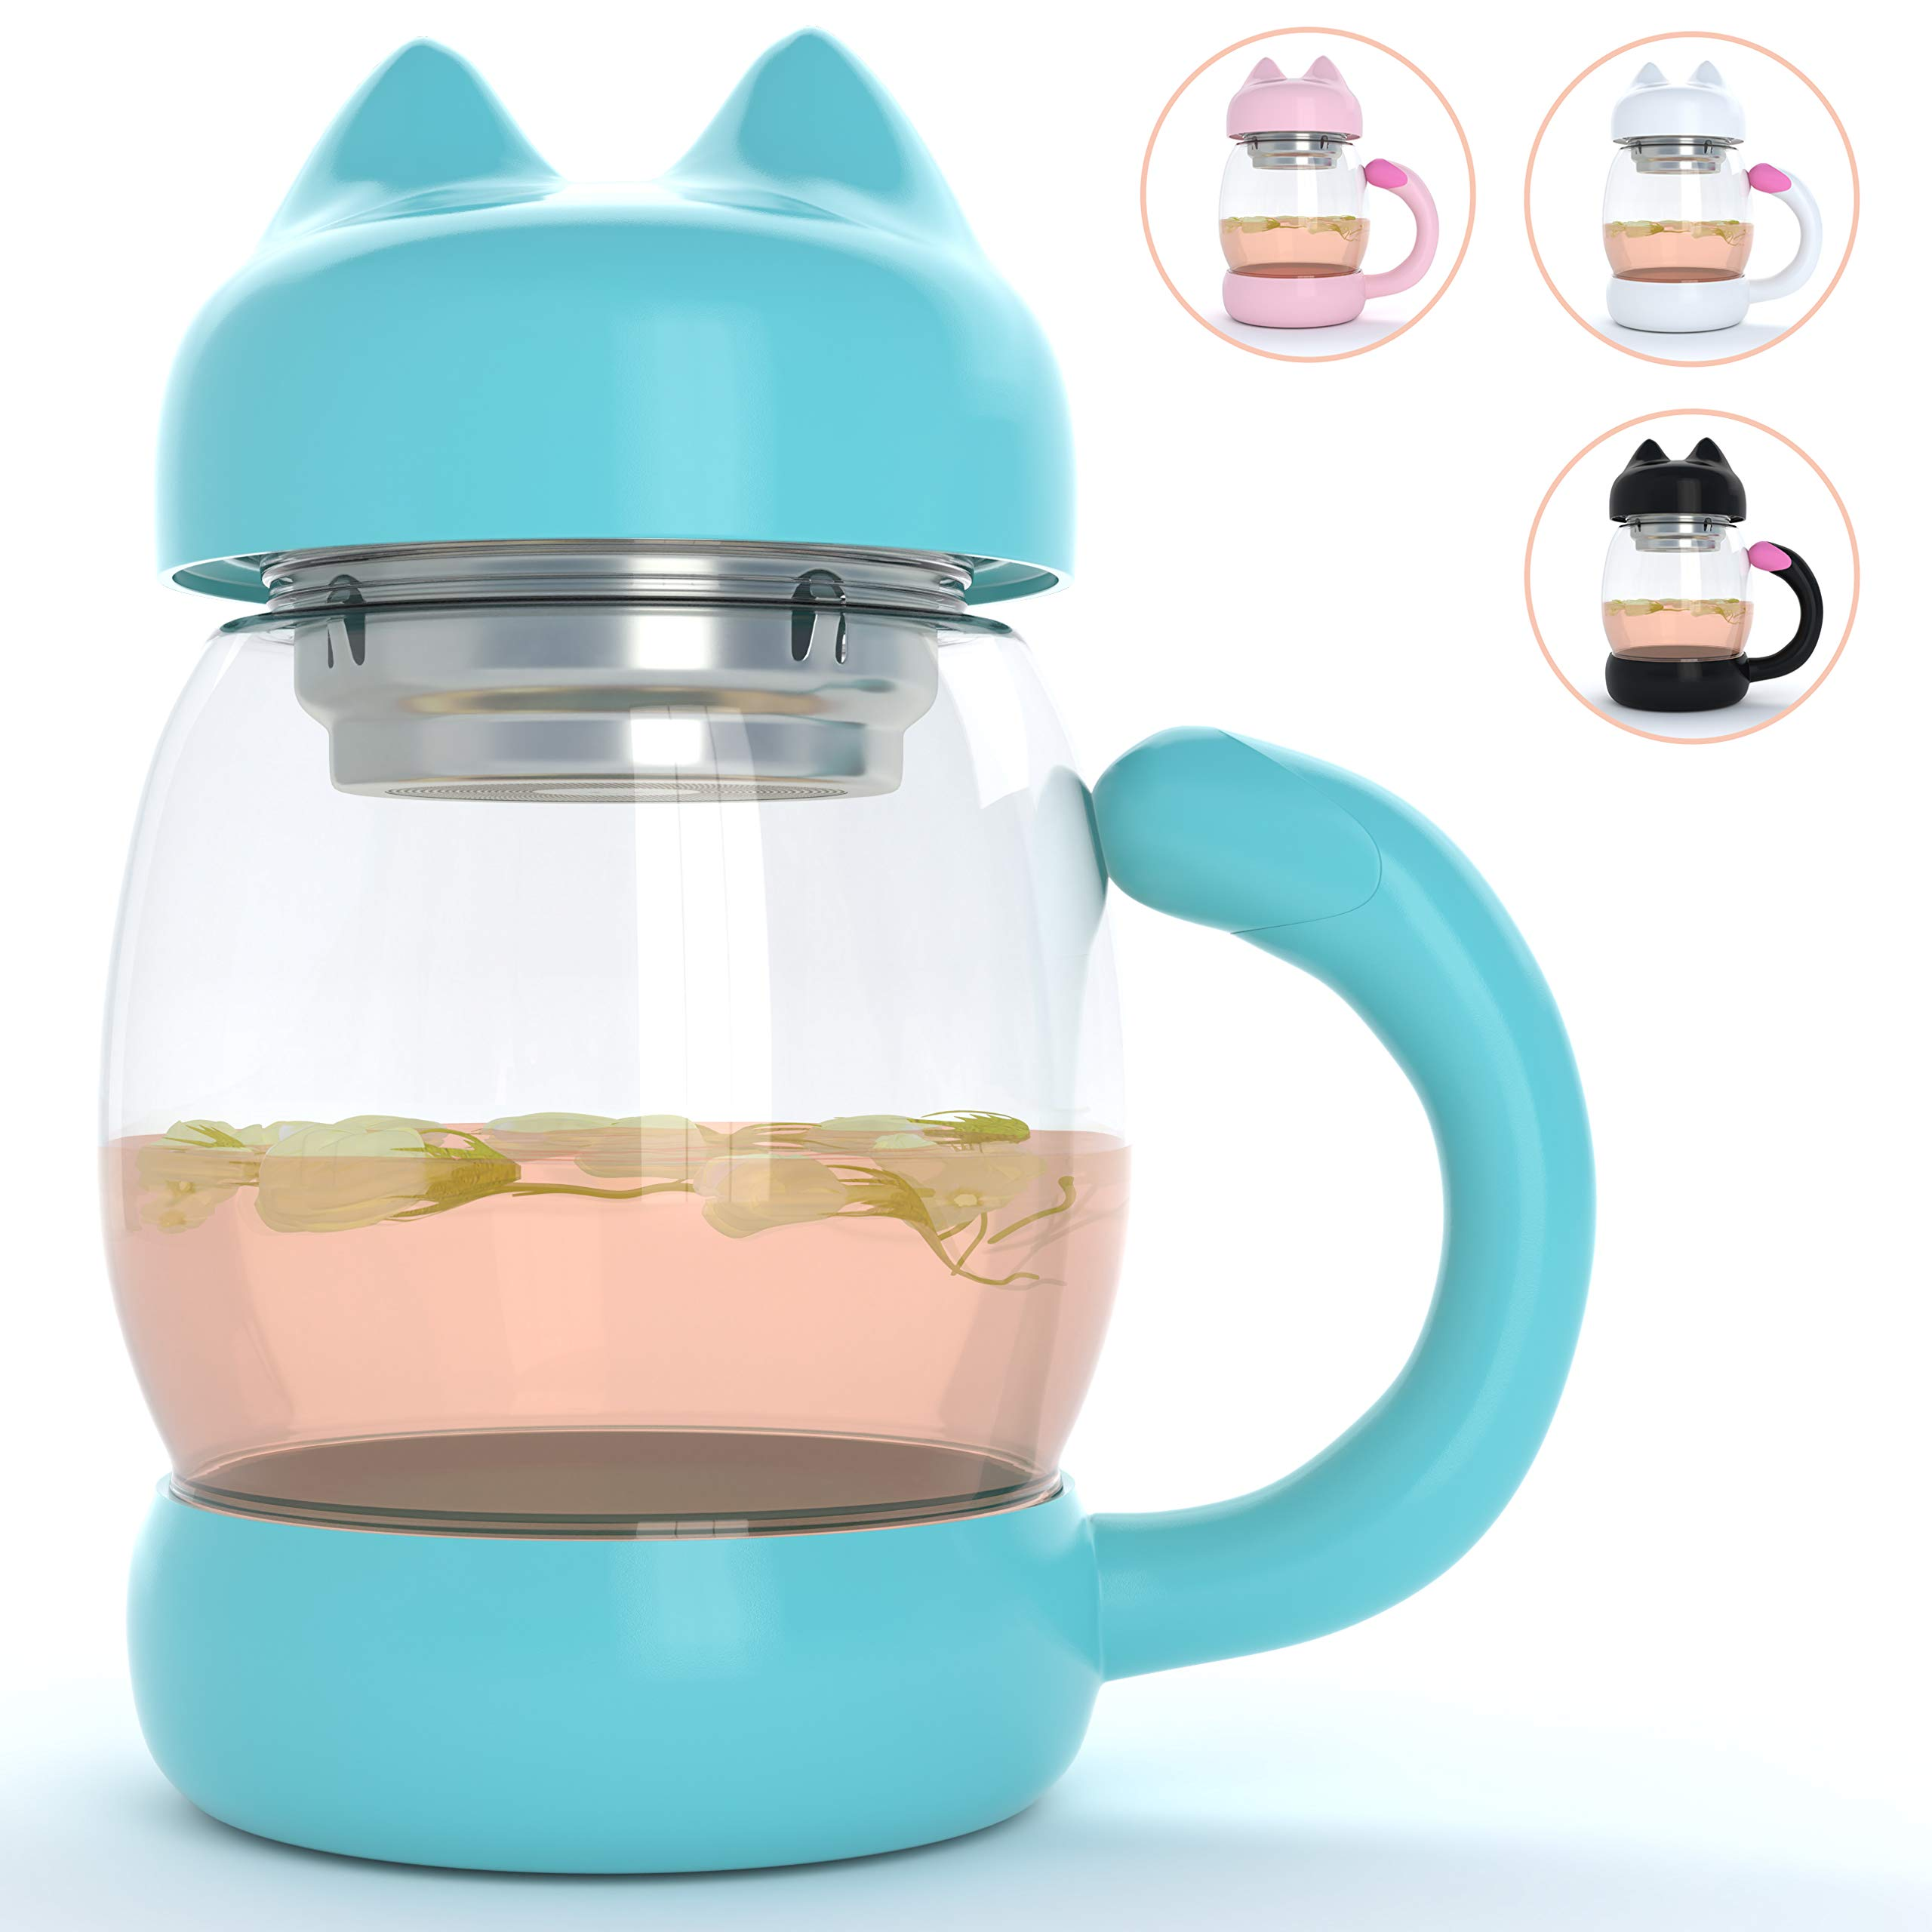 Cute Cat Tea Mug Cup – With Strainer / Infuser - Cat Lover Gifts for Cat Lovers and Women - Cat Themed Stuff Items Presents Gift - Portable Blue Travel Coffee Glass Mugs and Cups - Kitty Mug Lid 14oz